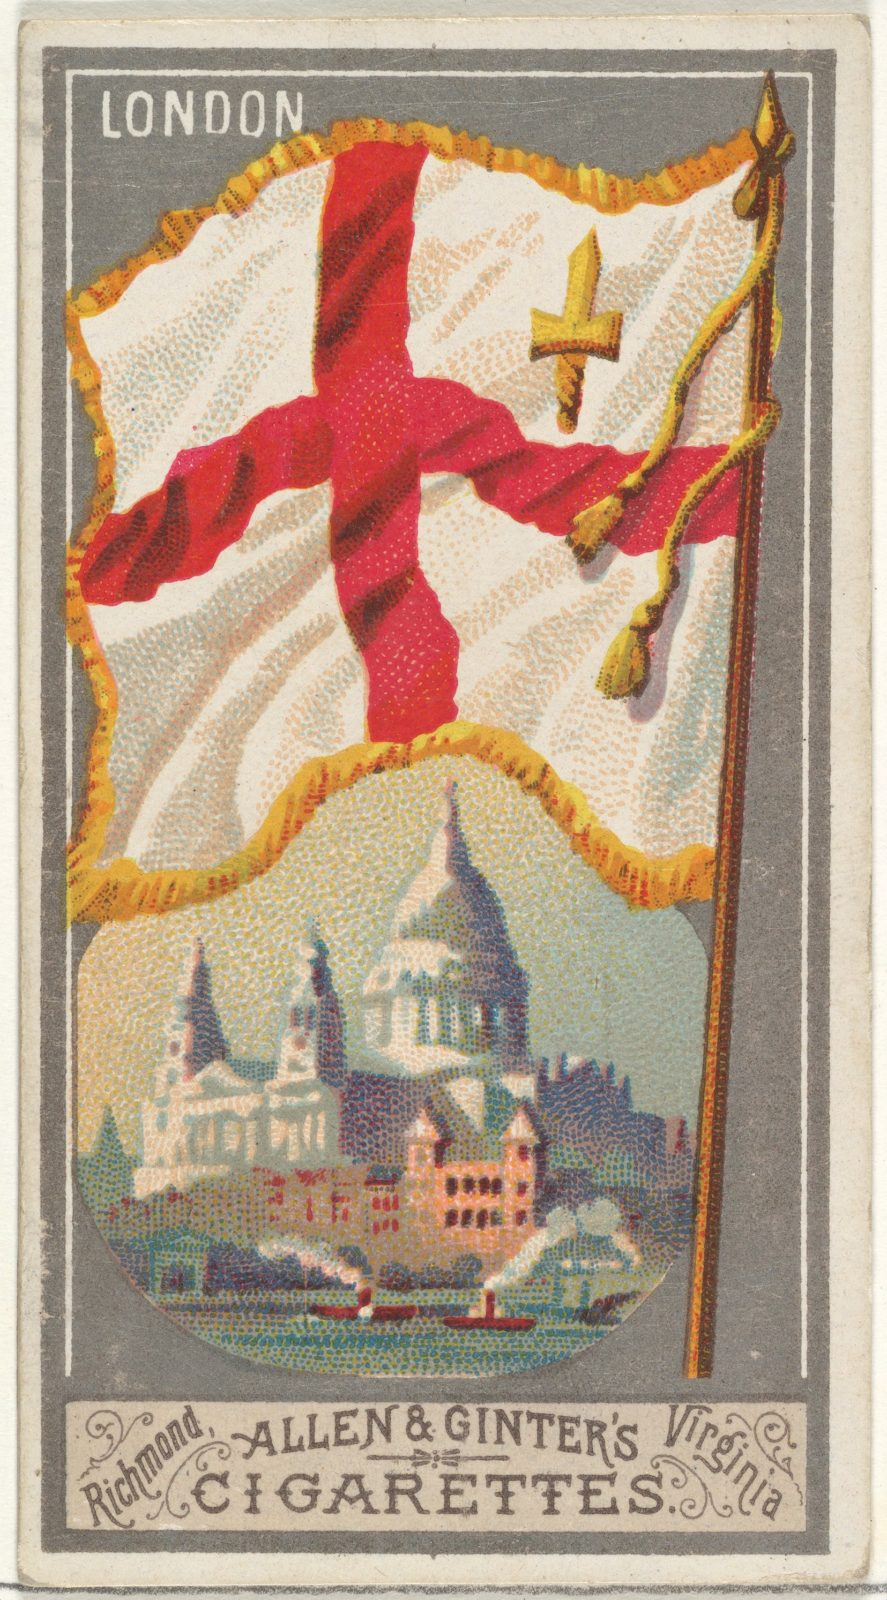 London, from the City Flags series (N6) for Allen & Ginter Cigarettes Brands